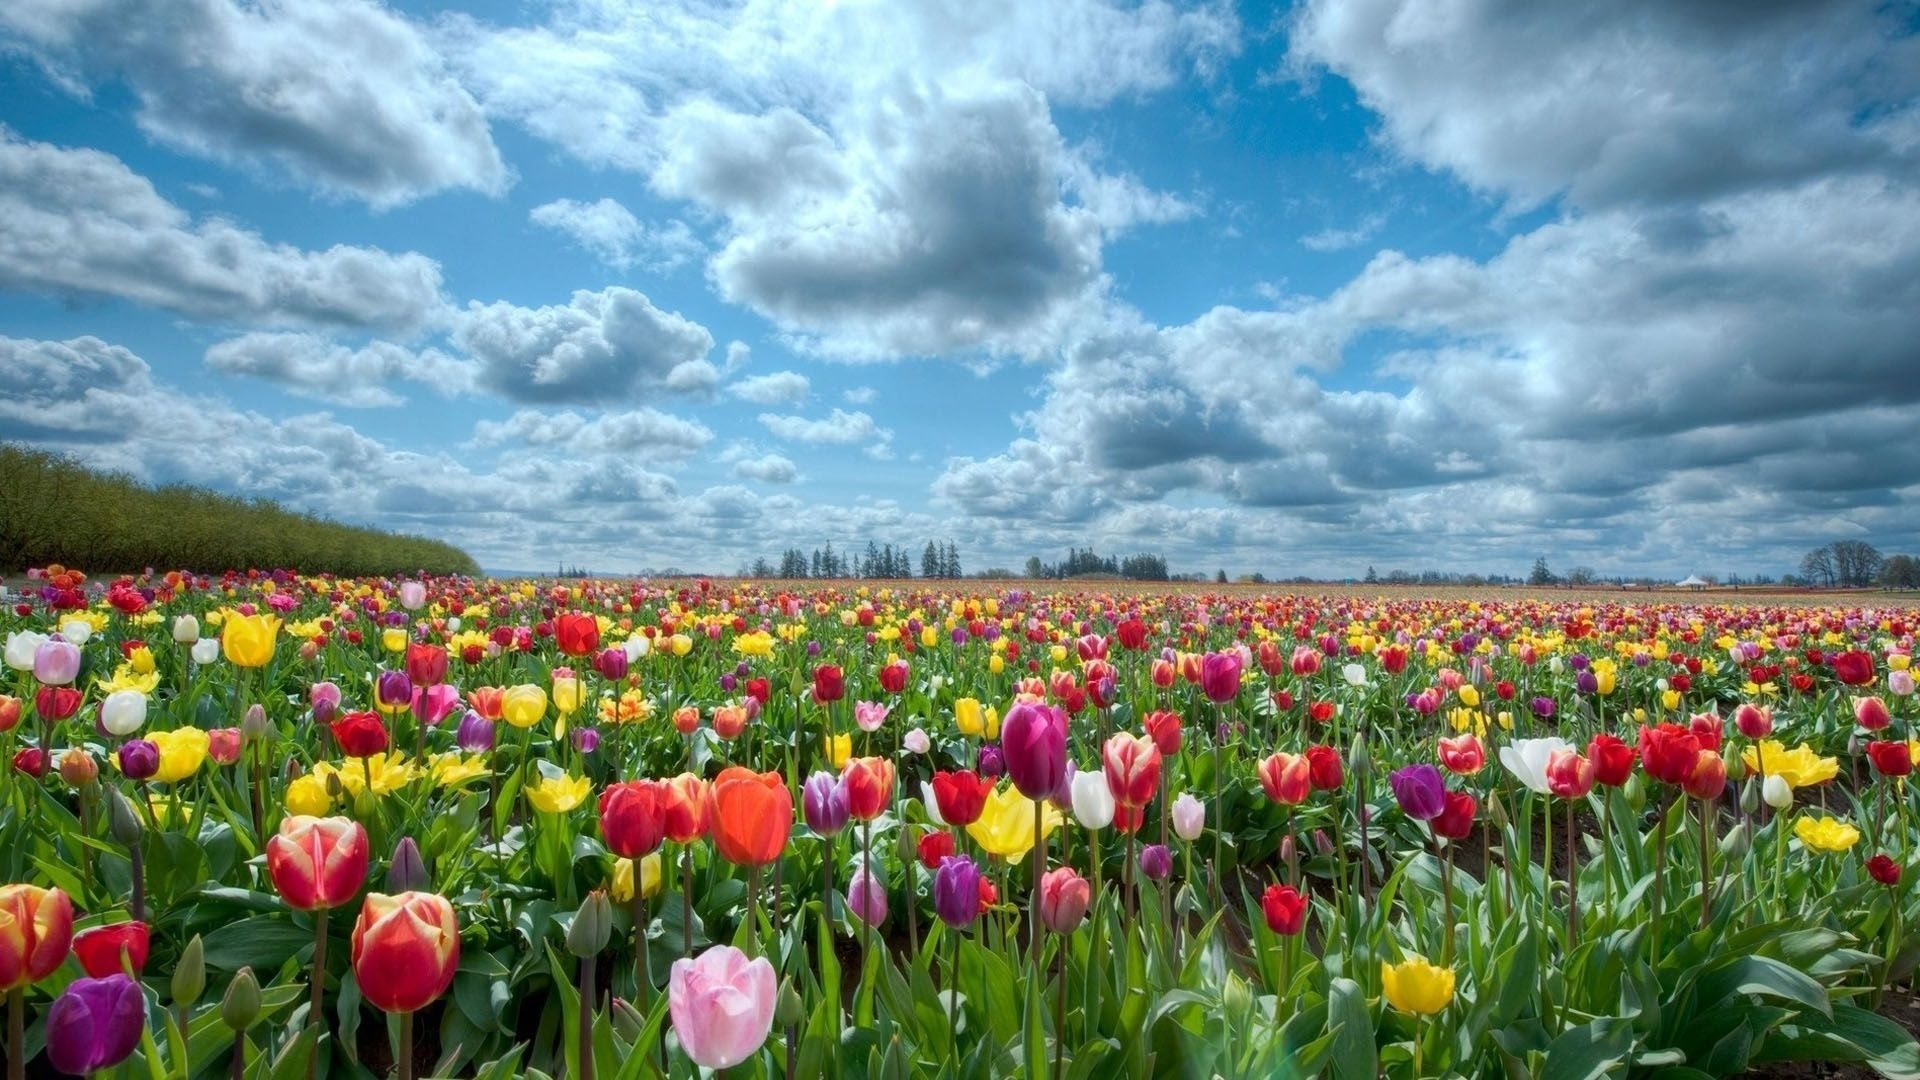 field of flowers background | hd-wallpapers-field-of-flowers